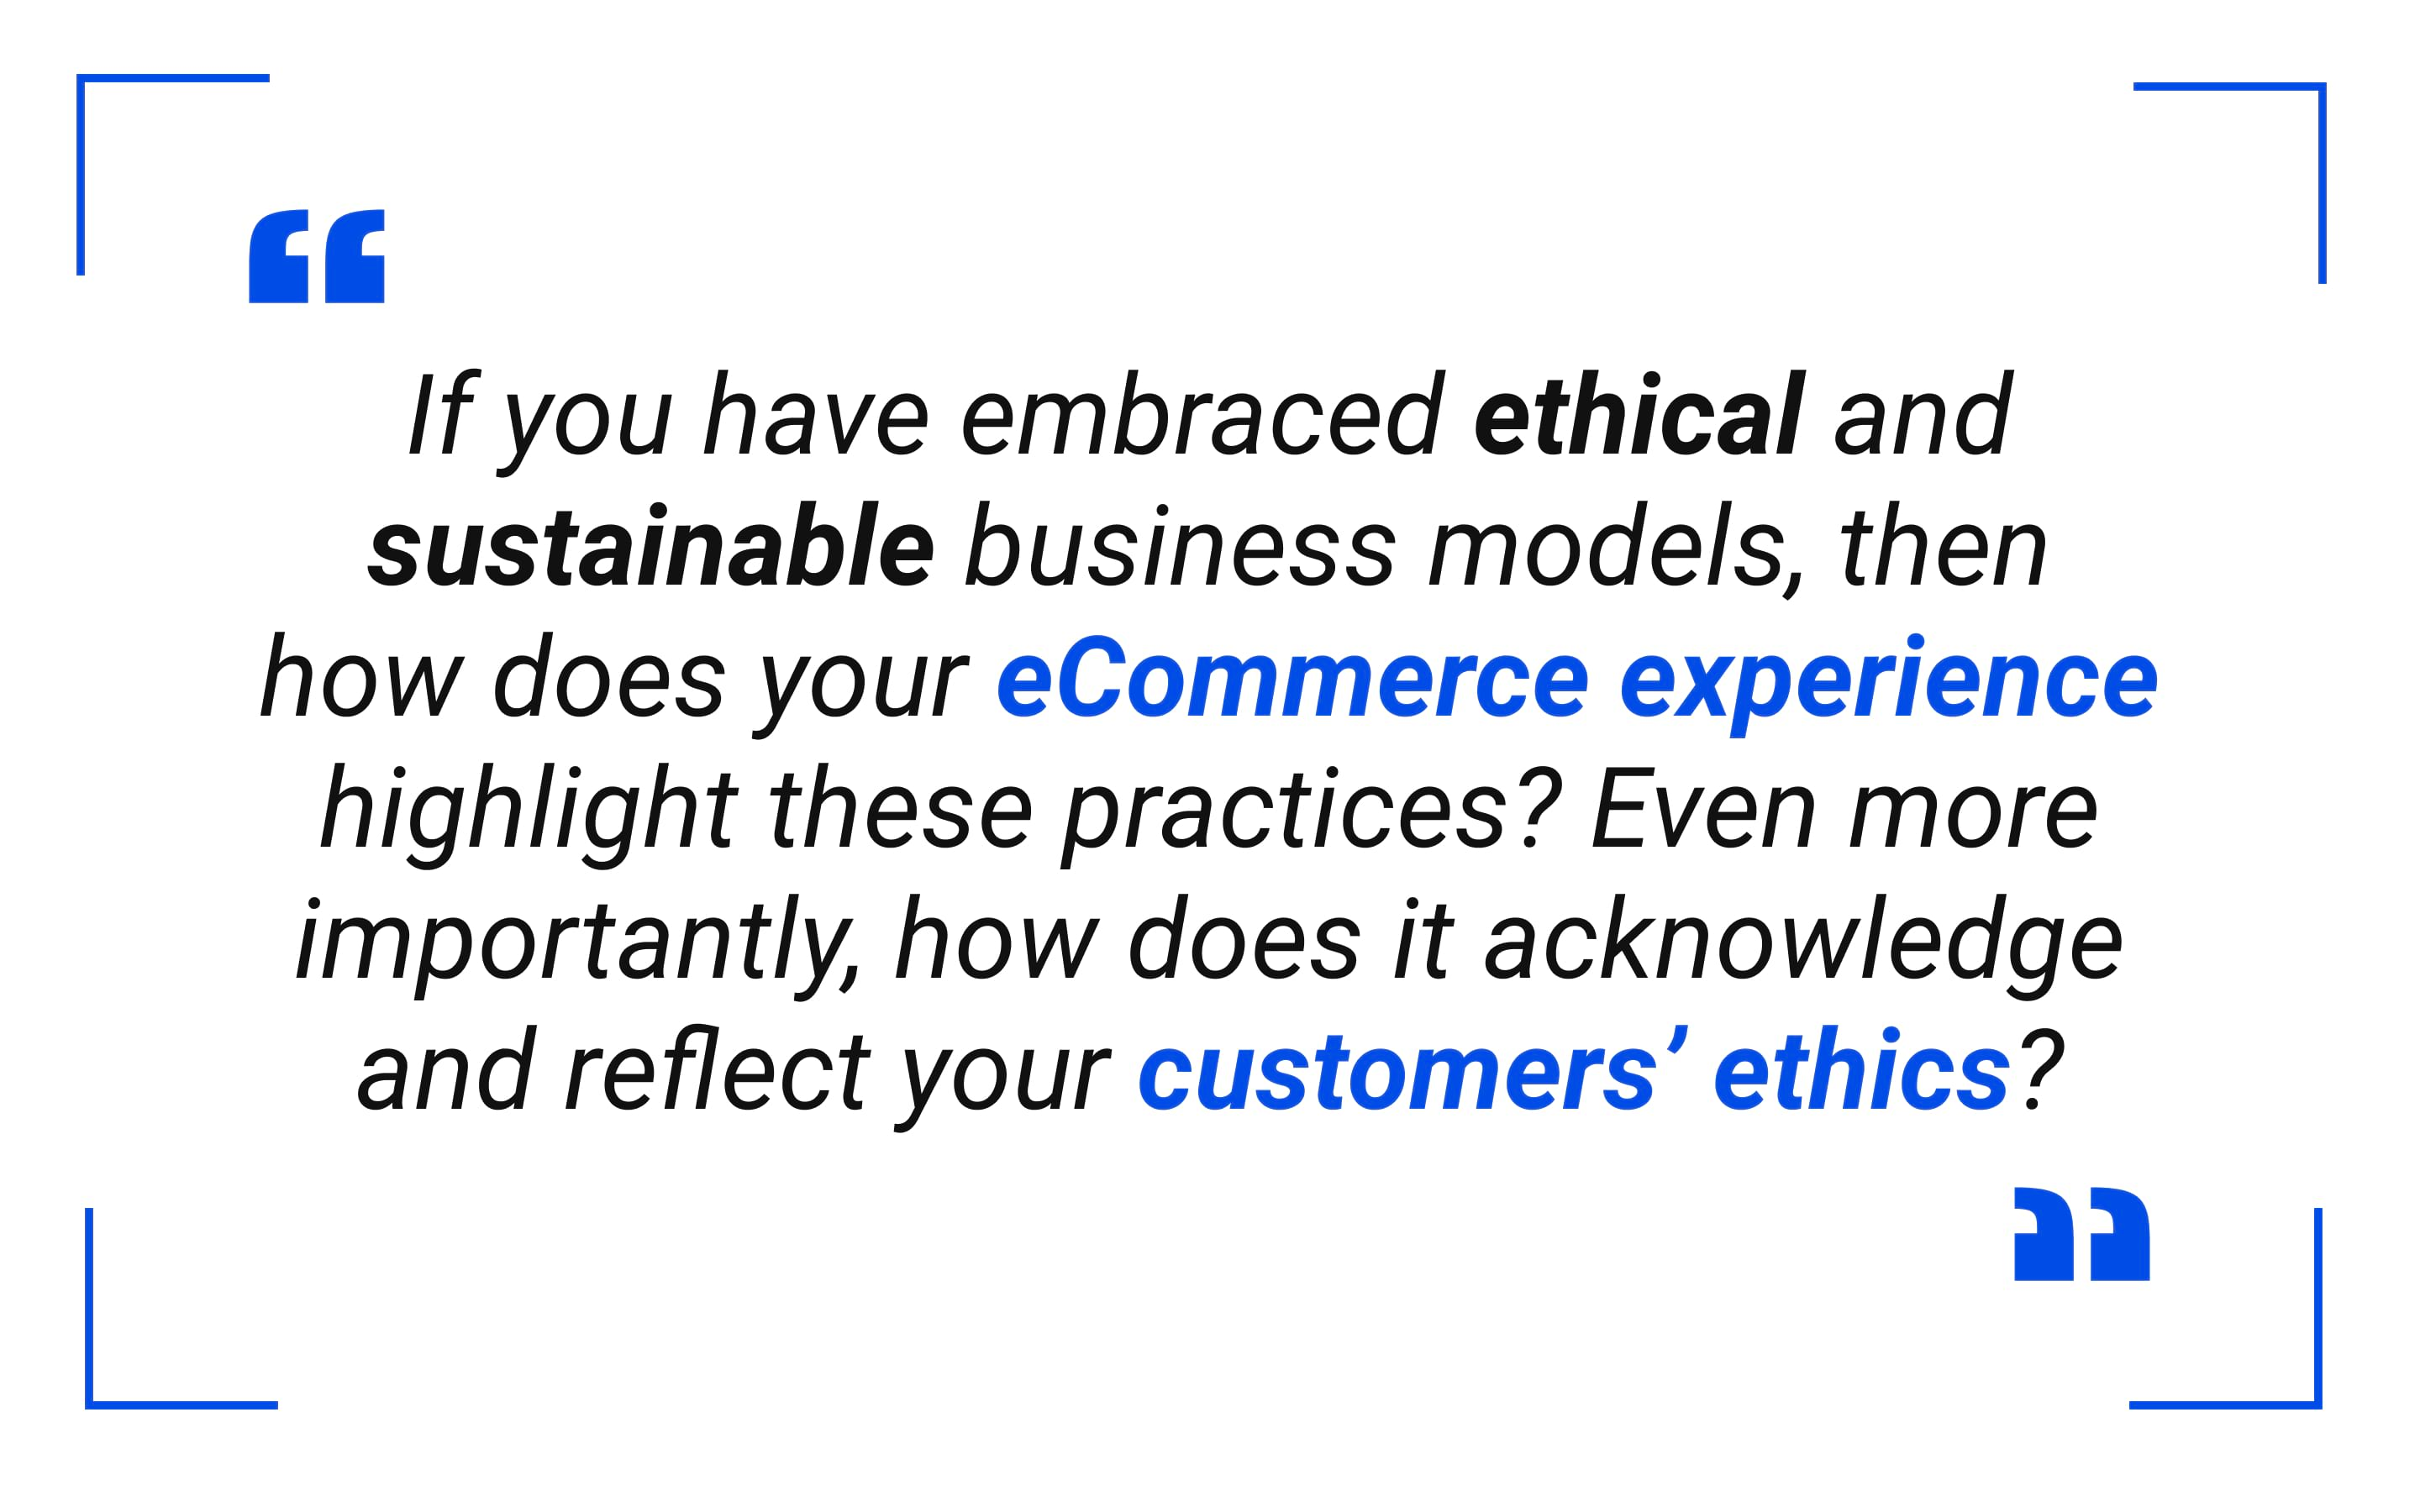 Ethical and sustainable business models